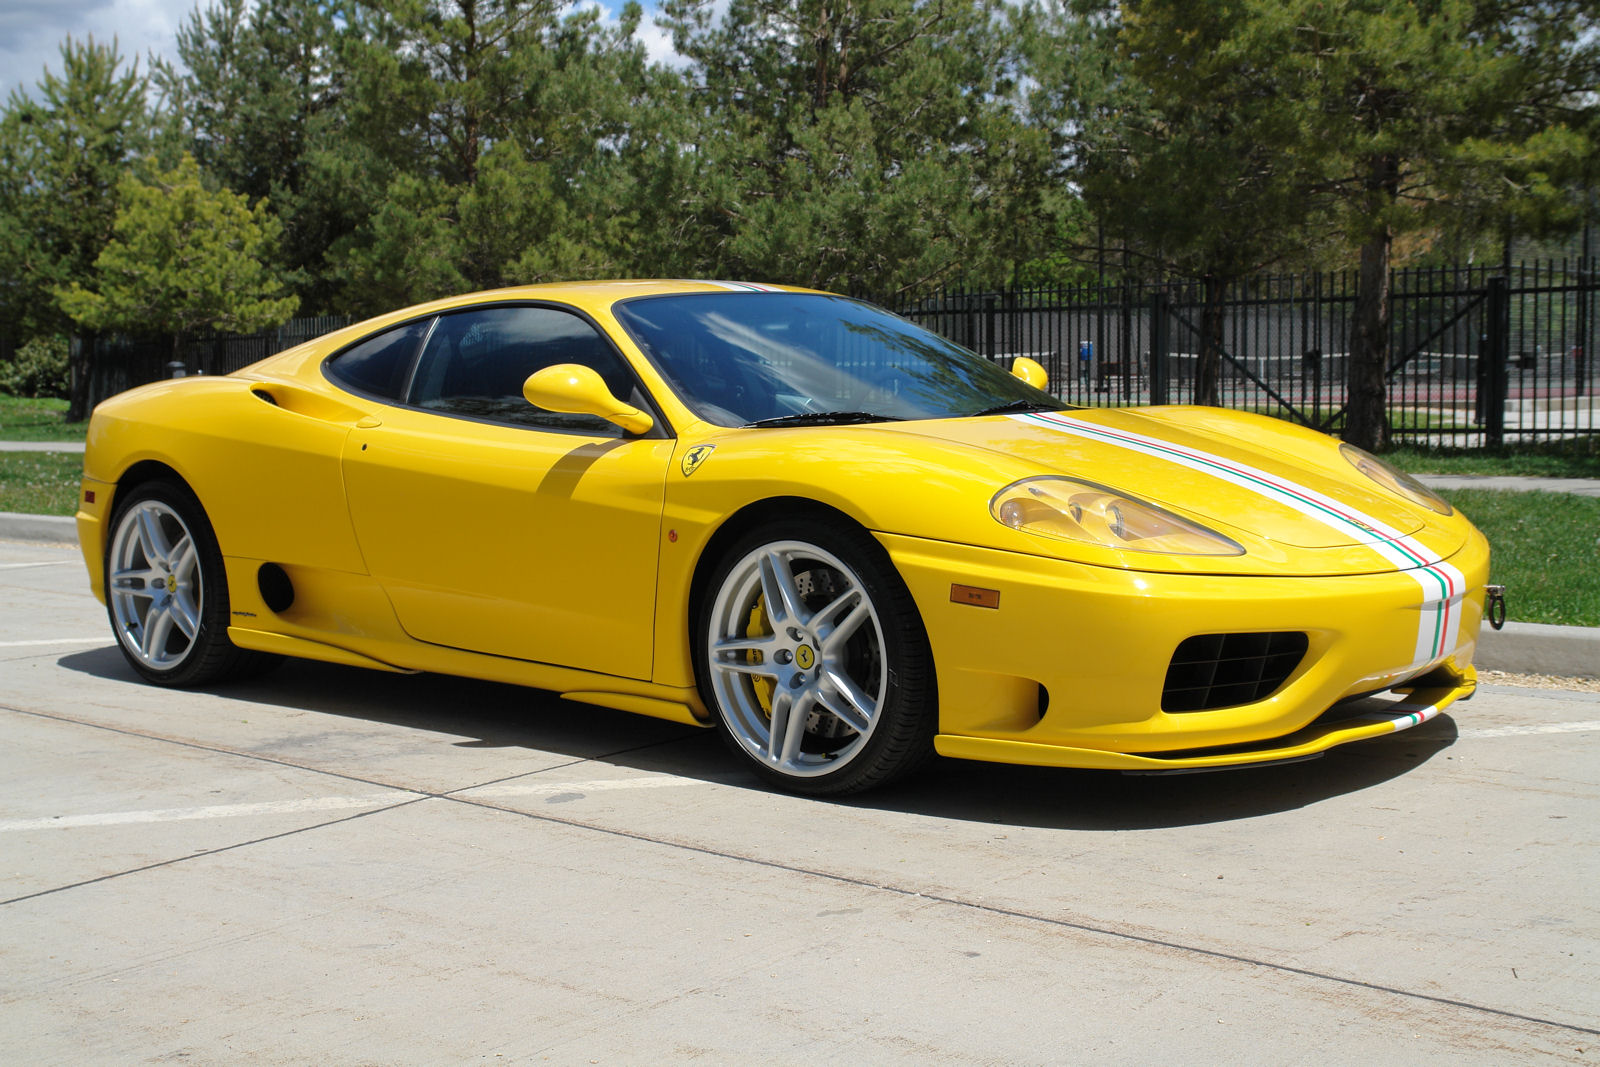 1999 Ferrari 360 Modena For Sale Luxury Auto Direct World Cars Wallpapers Desktop Download